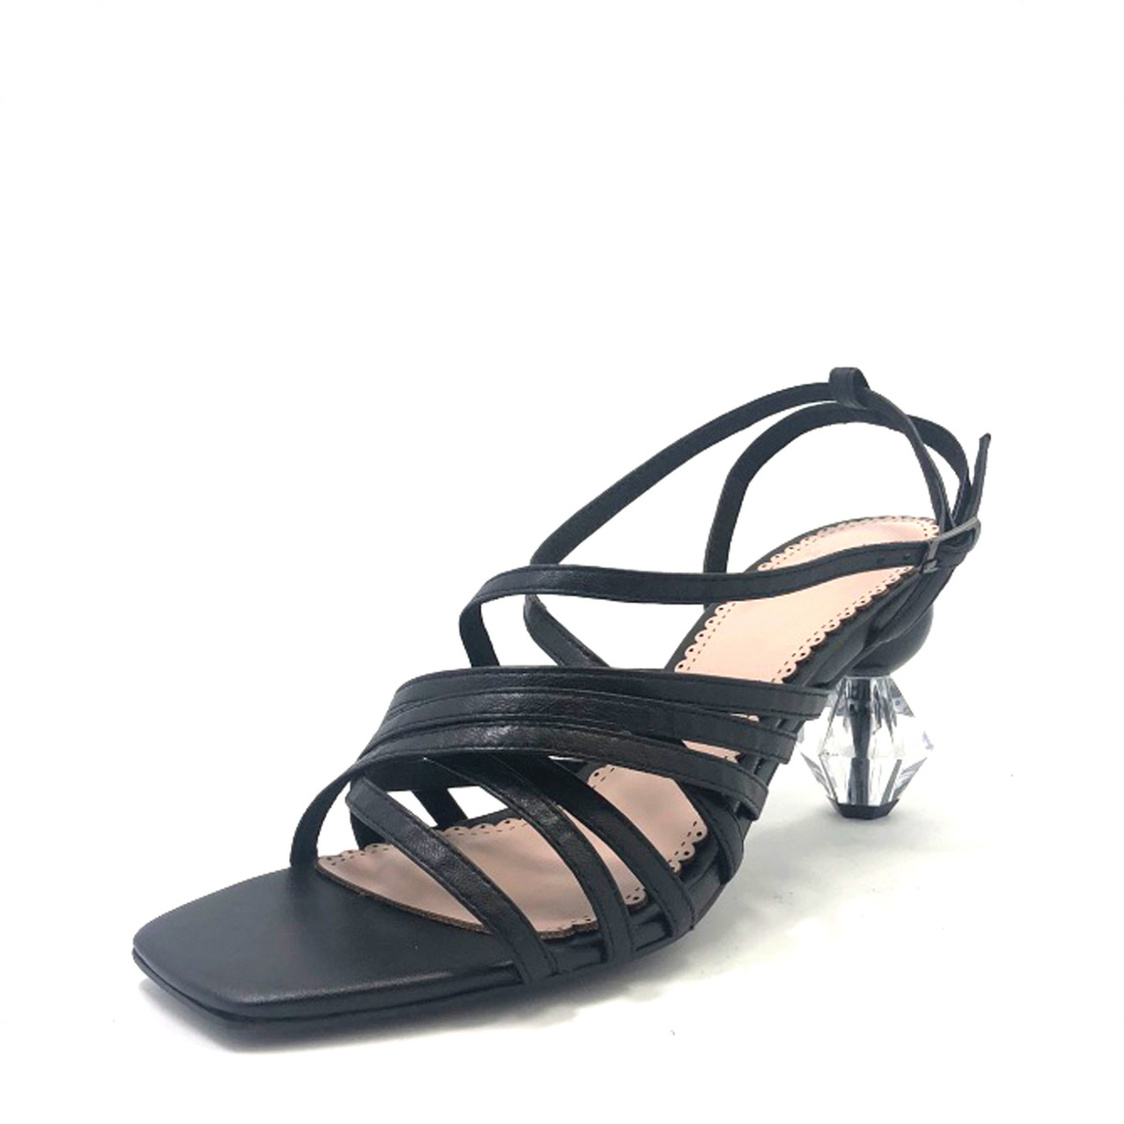 Martina Pink Strappy Sandals with Geometric Heel Black